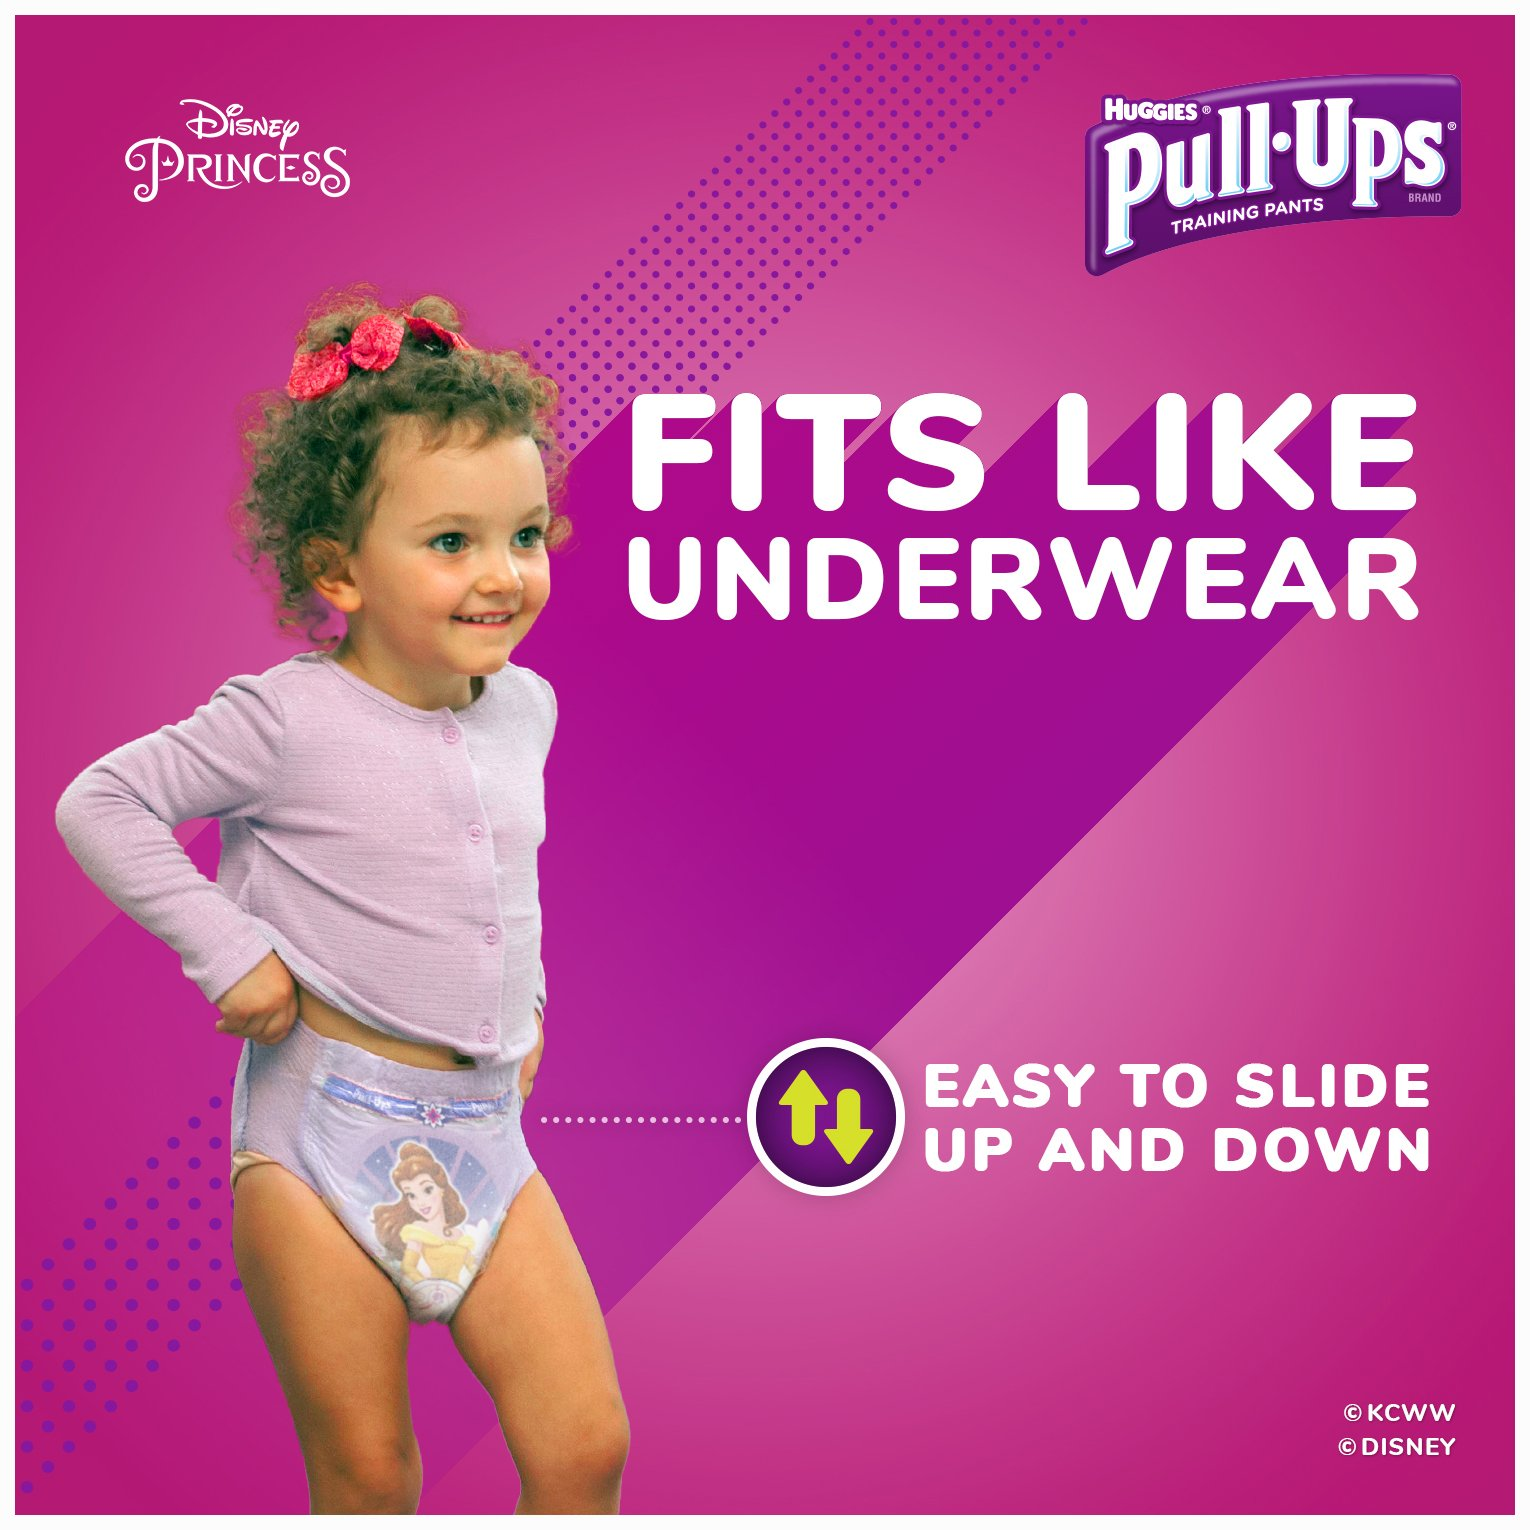 Pull-Ups Night-Time Potty Training Pants for Girls, 2T-3T (18-34 lb.), 23 Ct.- Pack of 4 (Packaging May Vary) by Pull-Ups (Image #3)